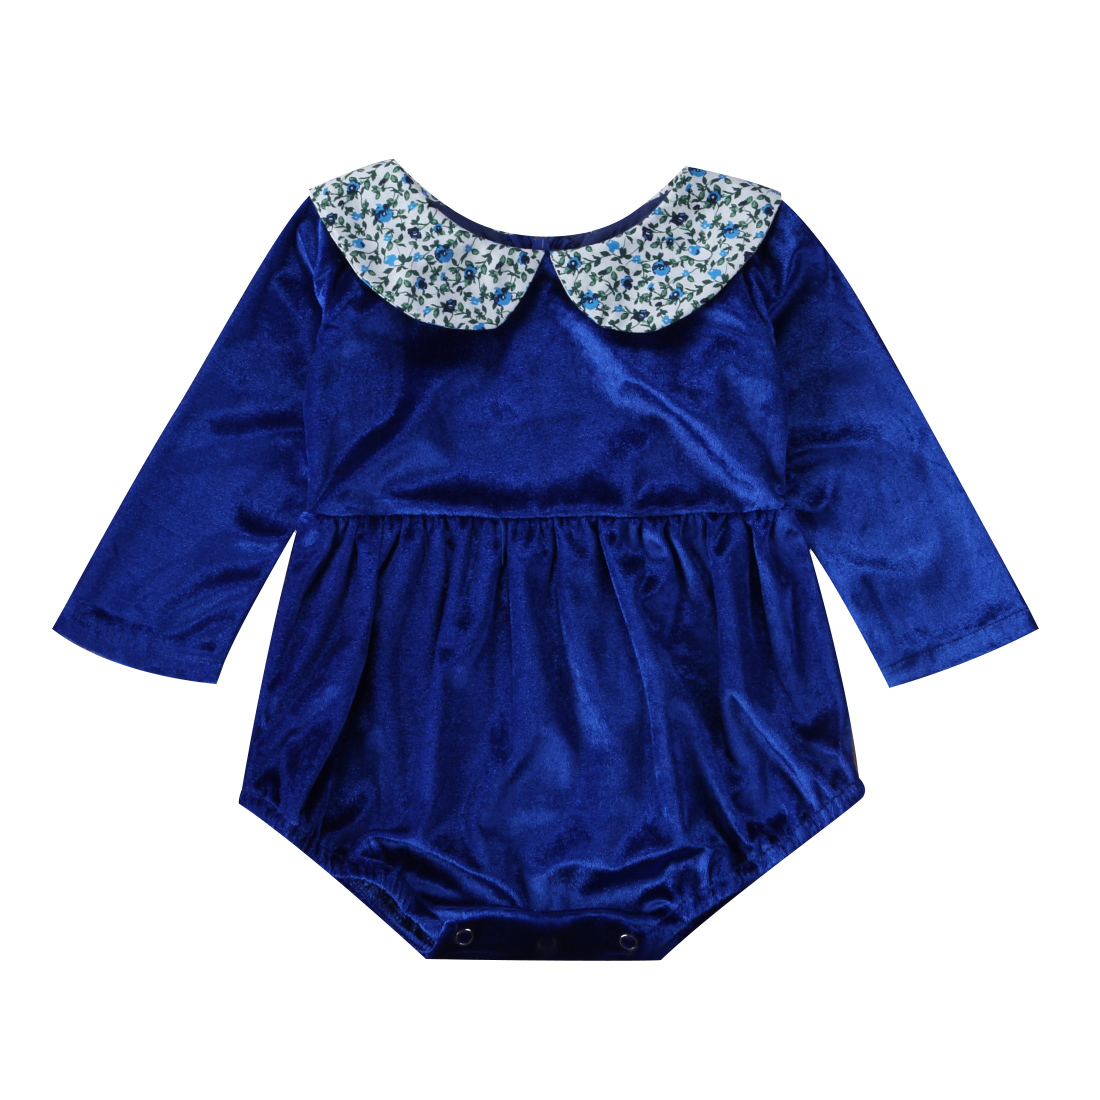 pudcoco 2017 Infant Baby Girl Princess floral peter pan Collar Long Sleeve Romper Outfit Clothes